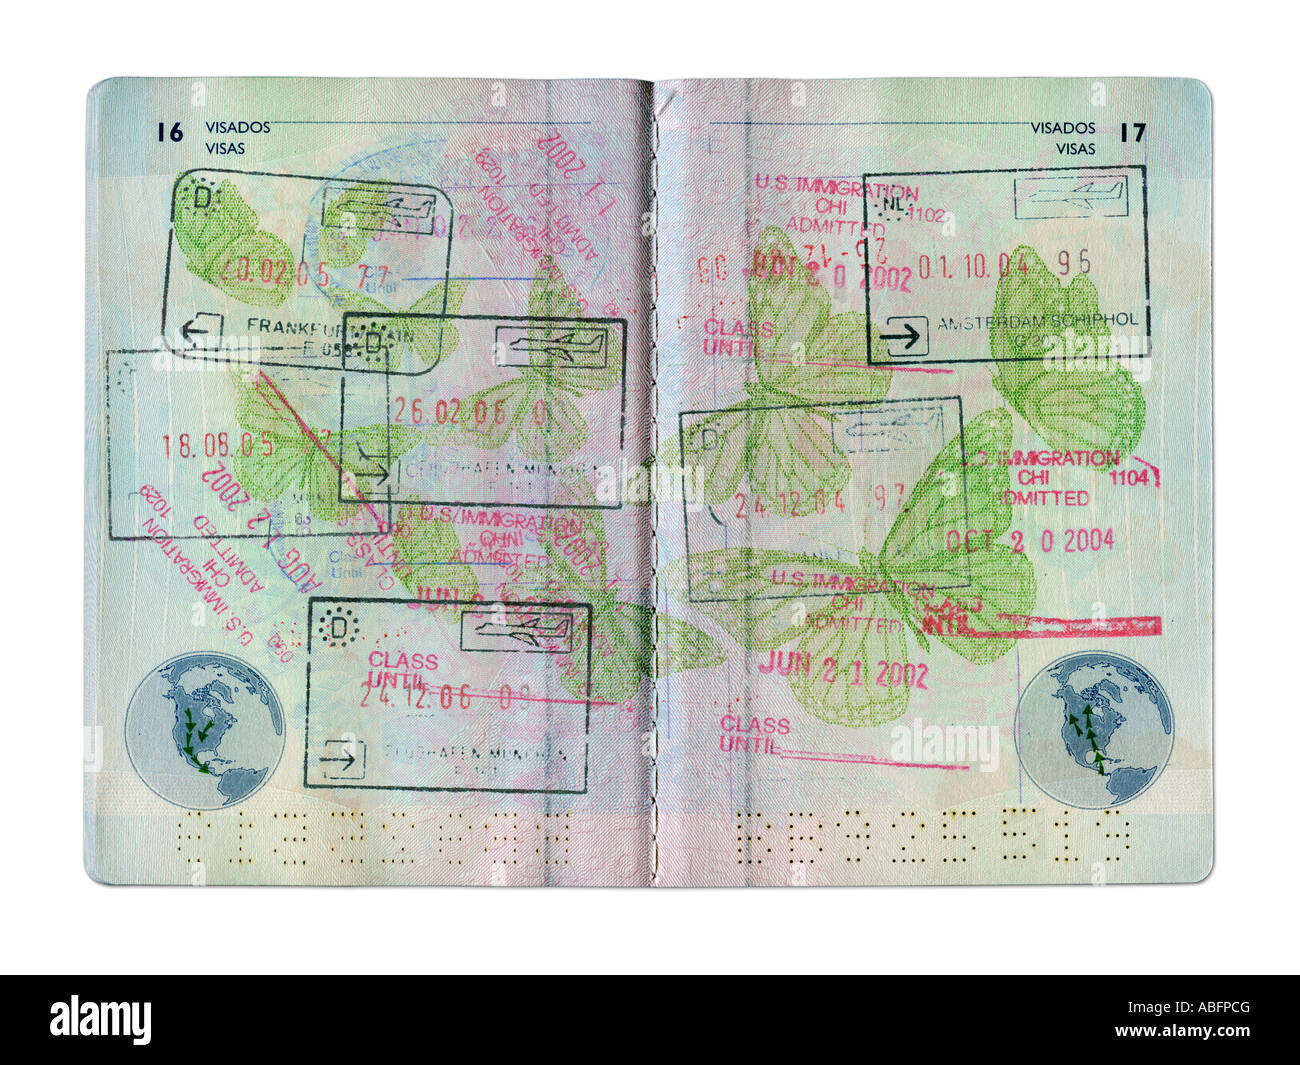 STAMPS IN SPANISH  PASSPORT ON WHITE BACKGROUND Stock Photo